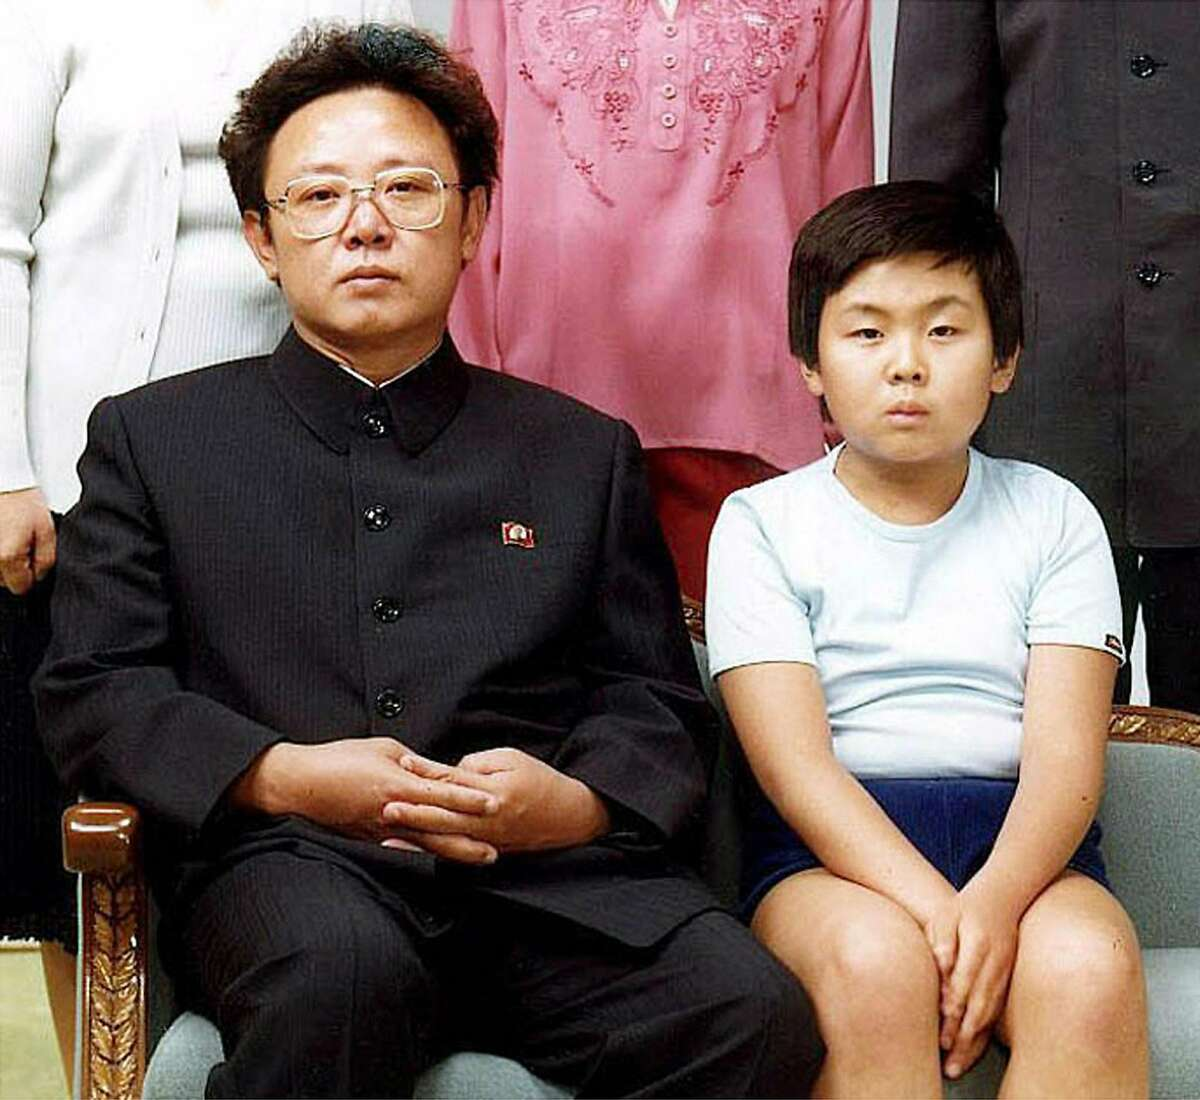 Kim Jong Nam, seen here with his father in a photo believed to have been taken in 1981, is Kim Jong Il's oldest son. His mother was Song Hye-rim, a North Korean actress who was having an affair with Kim Jong Il.